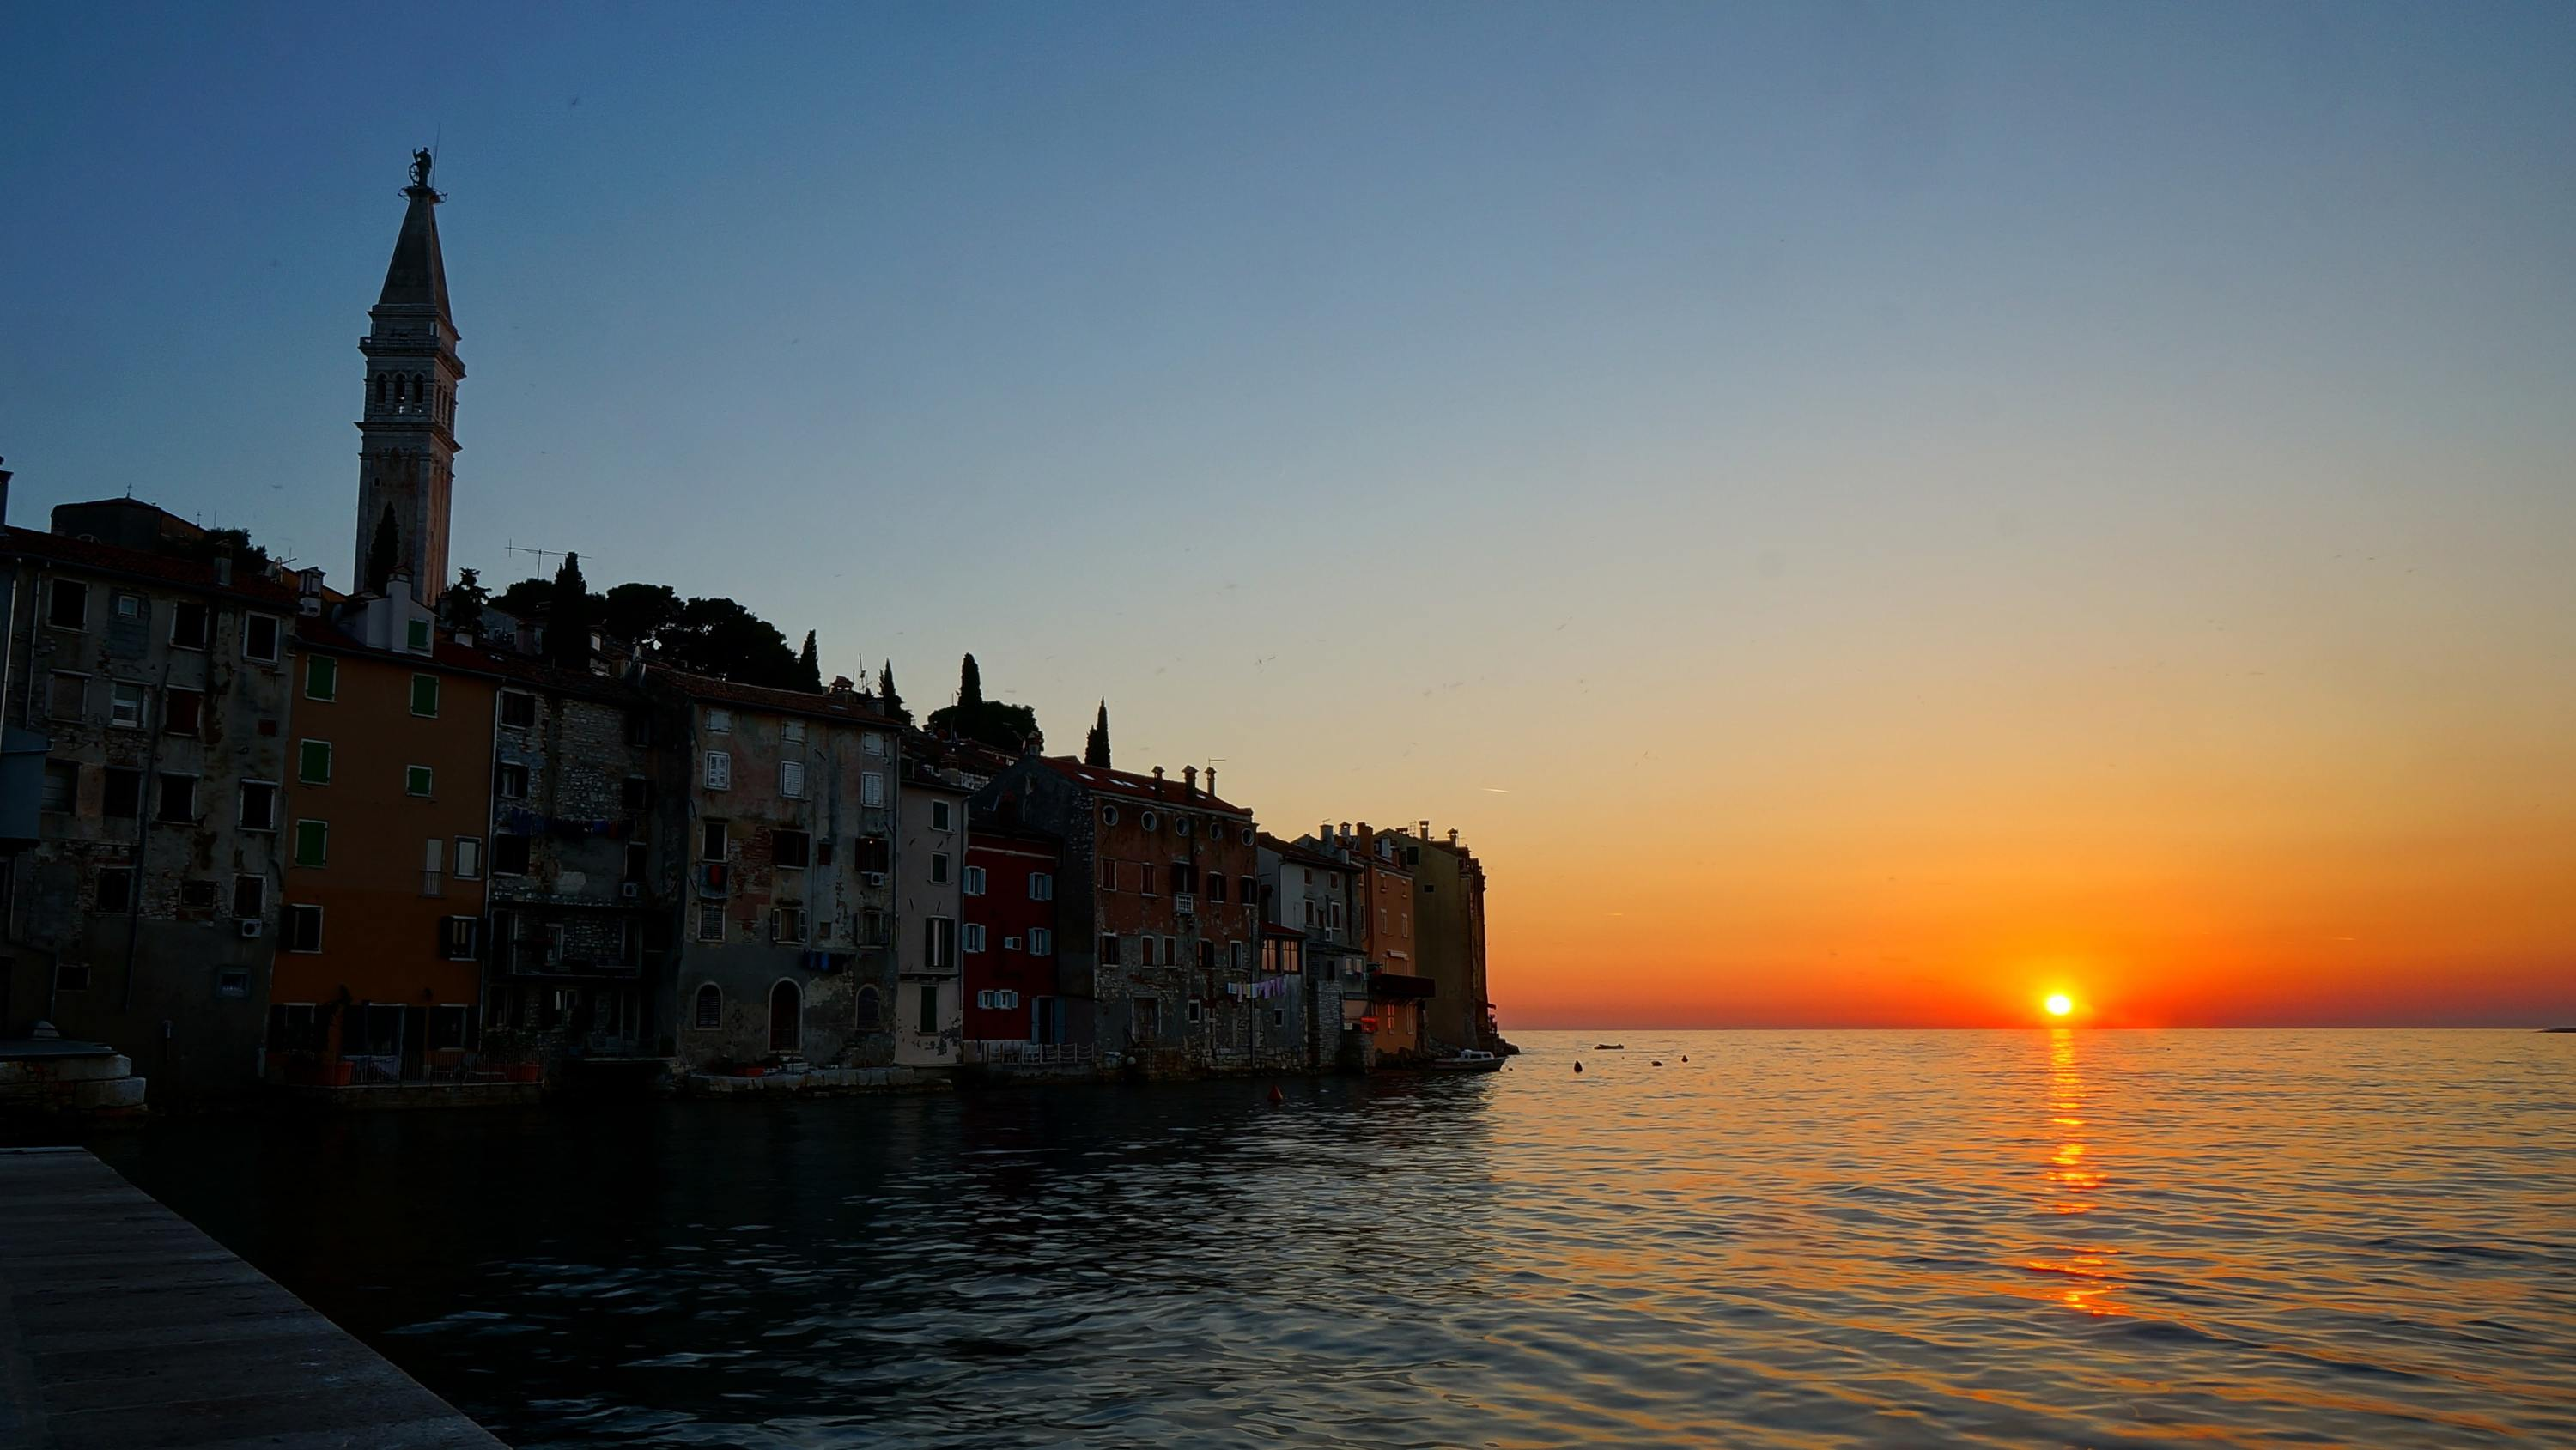 In pictures: the most beautiful sunsets in Croatia